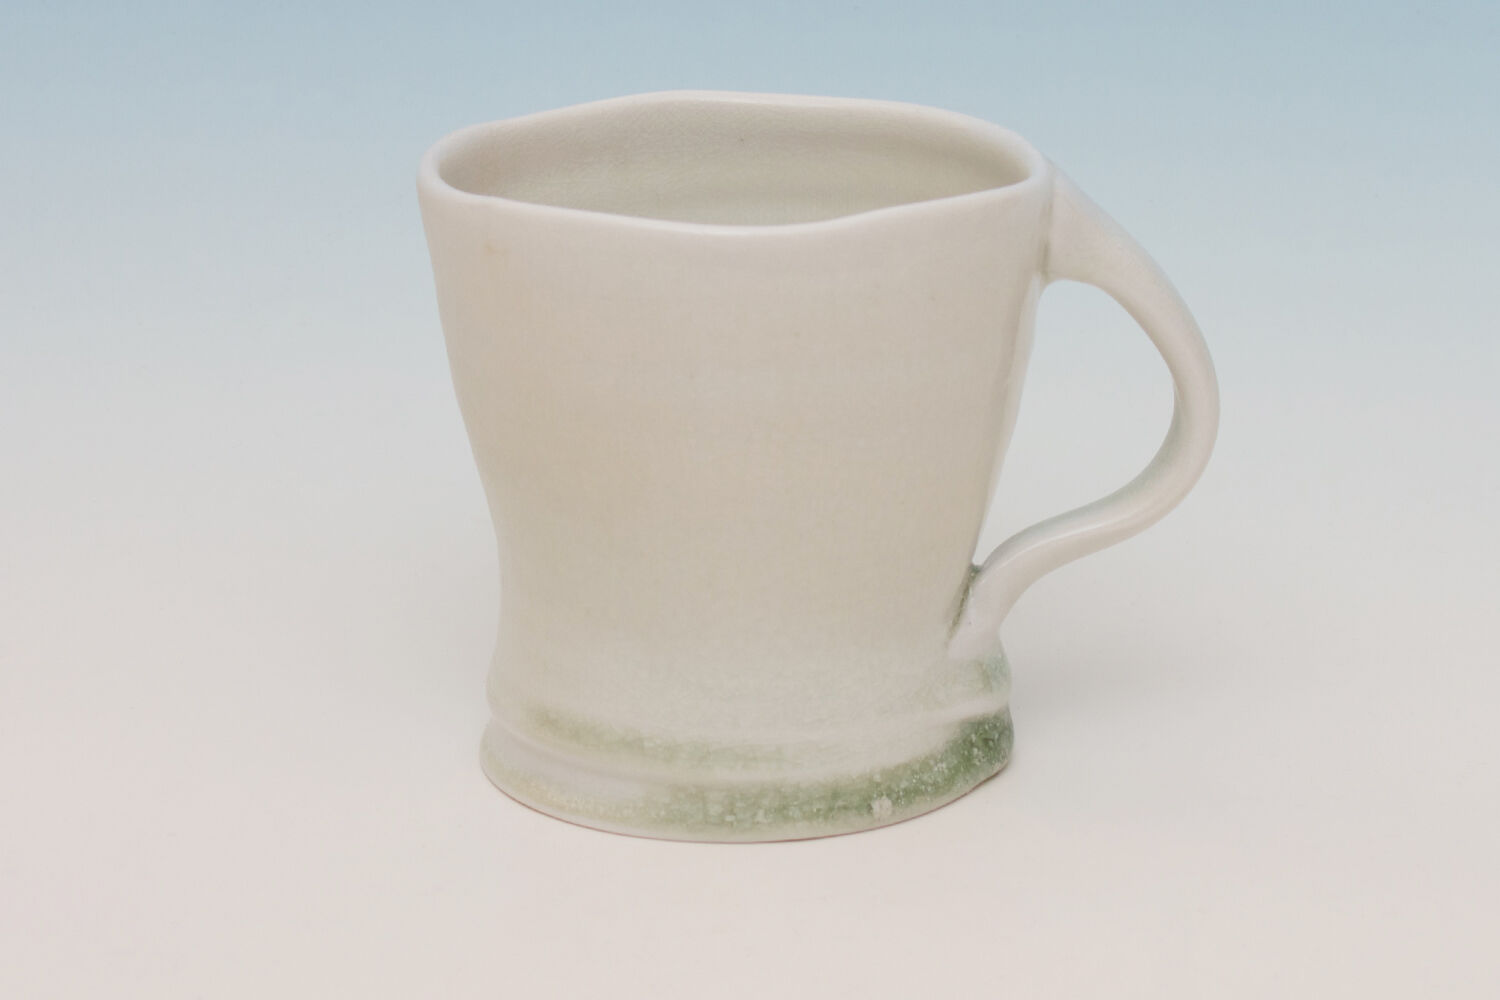 Sandy Lockwood Porcelain Mug 09